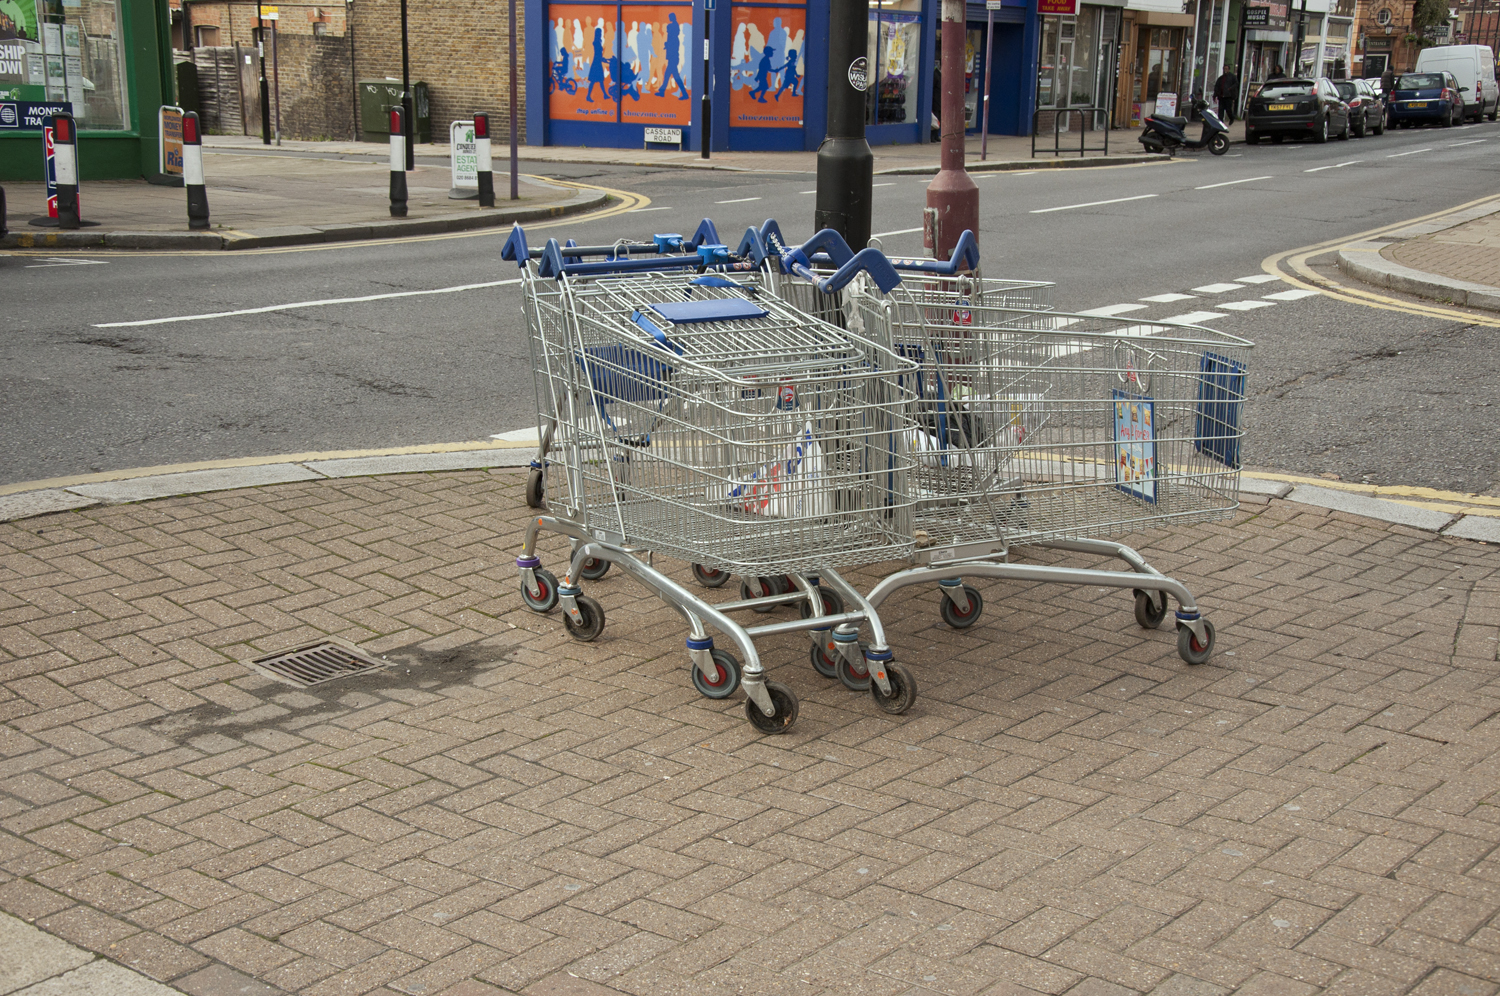 2014-Discarded-Shopping-Cart_03.jpg